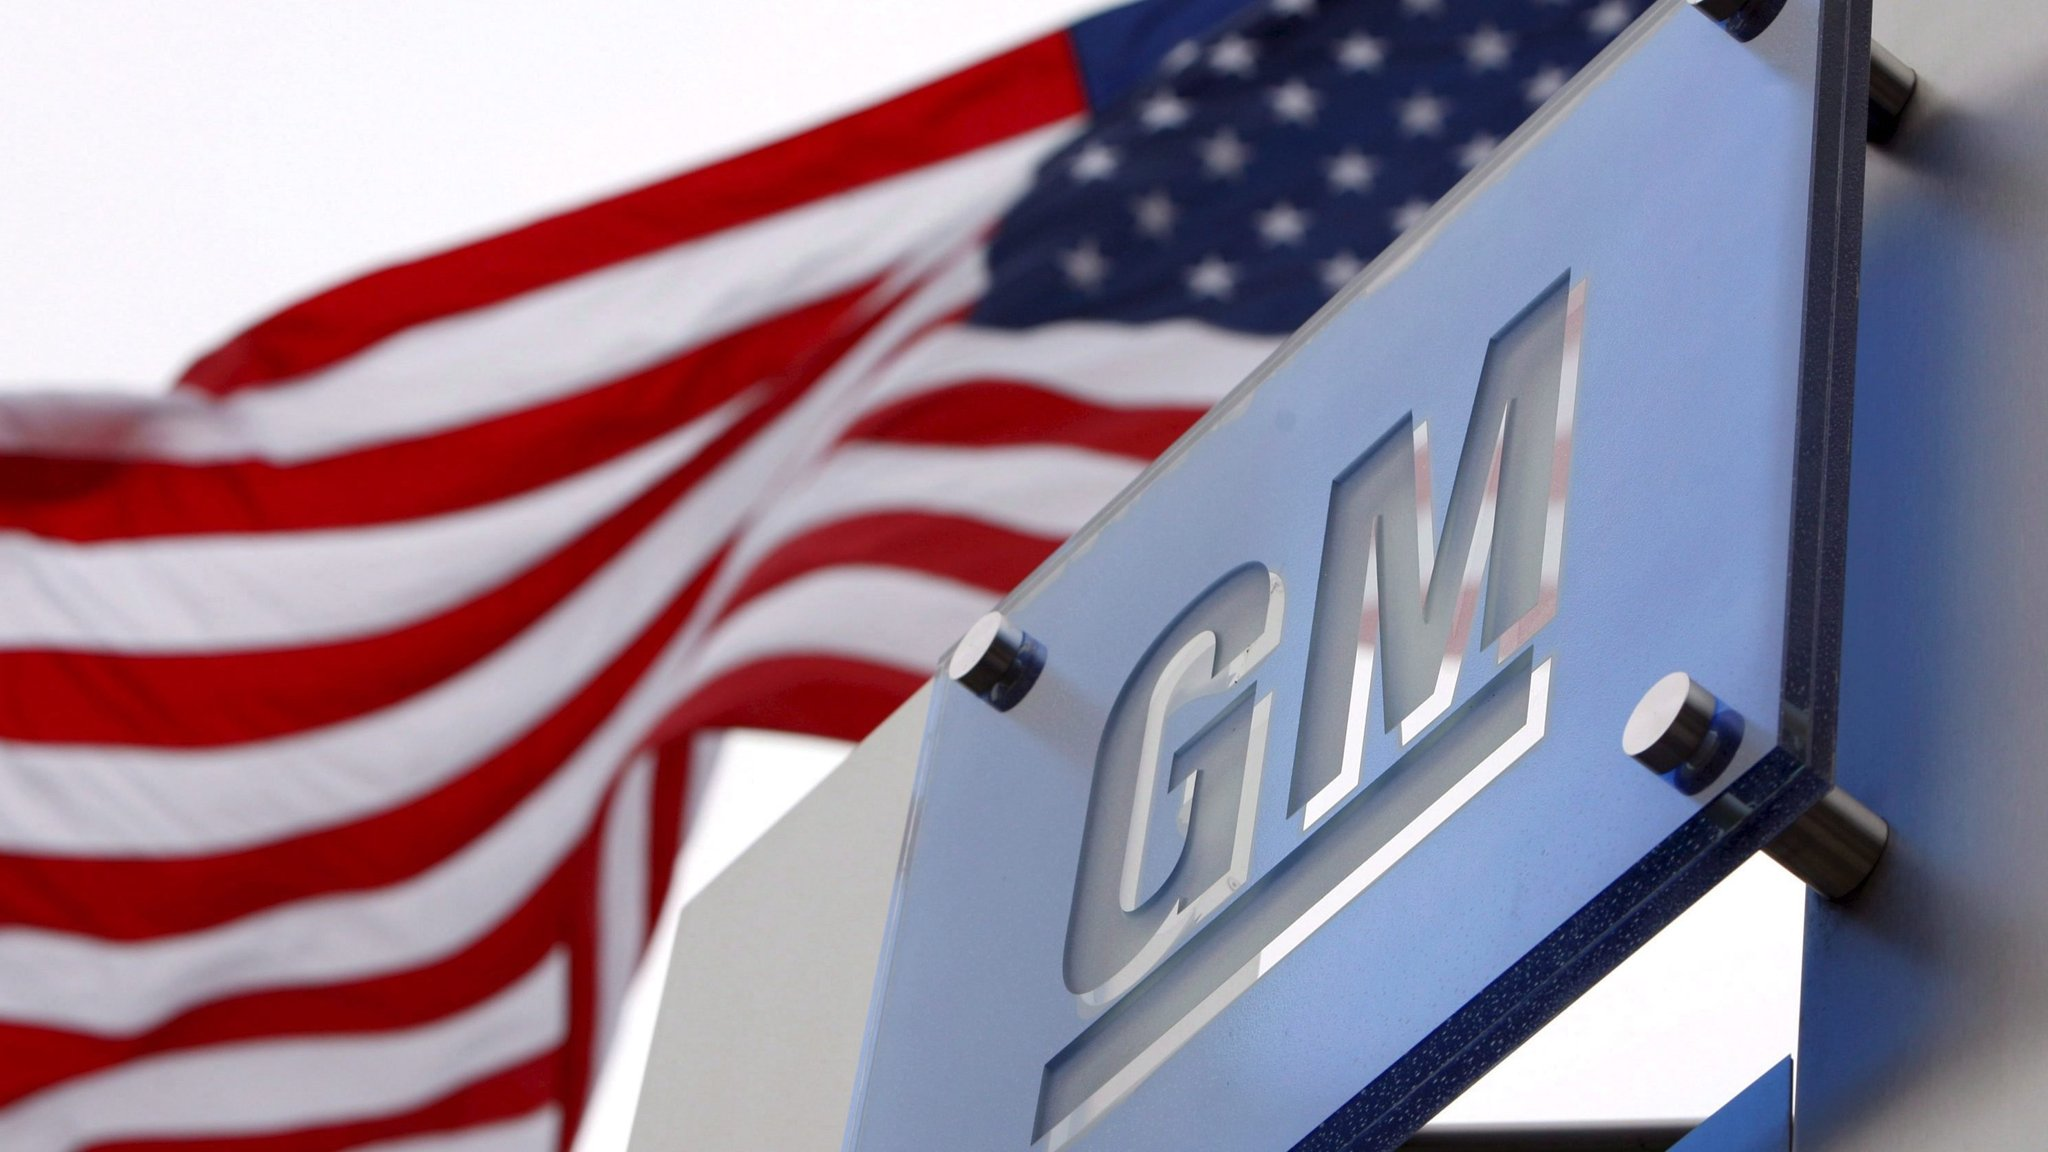 General Motors Recalls More Than 4m Cars Over Airbag Failure